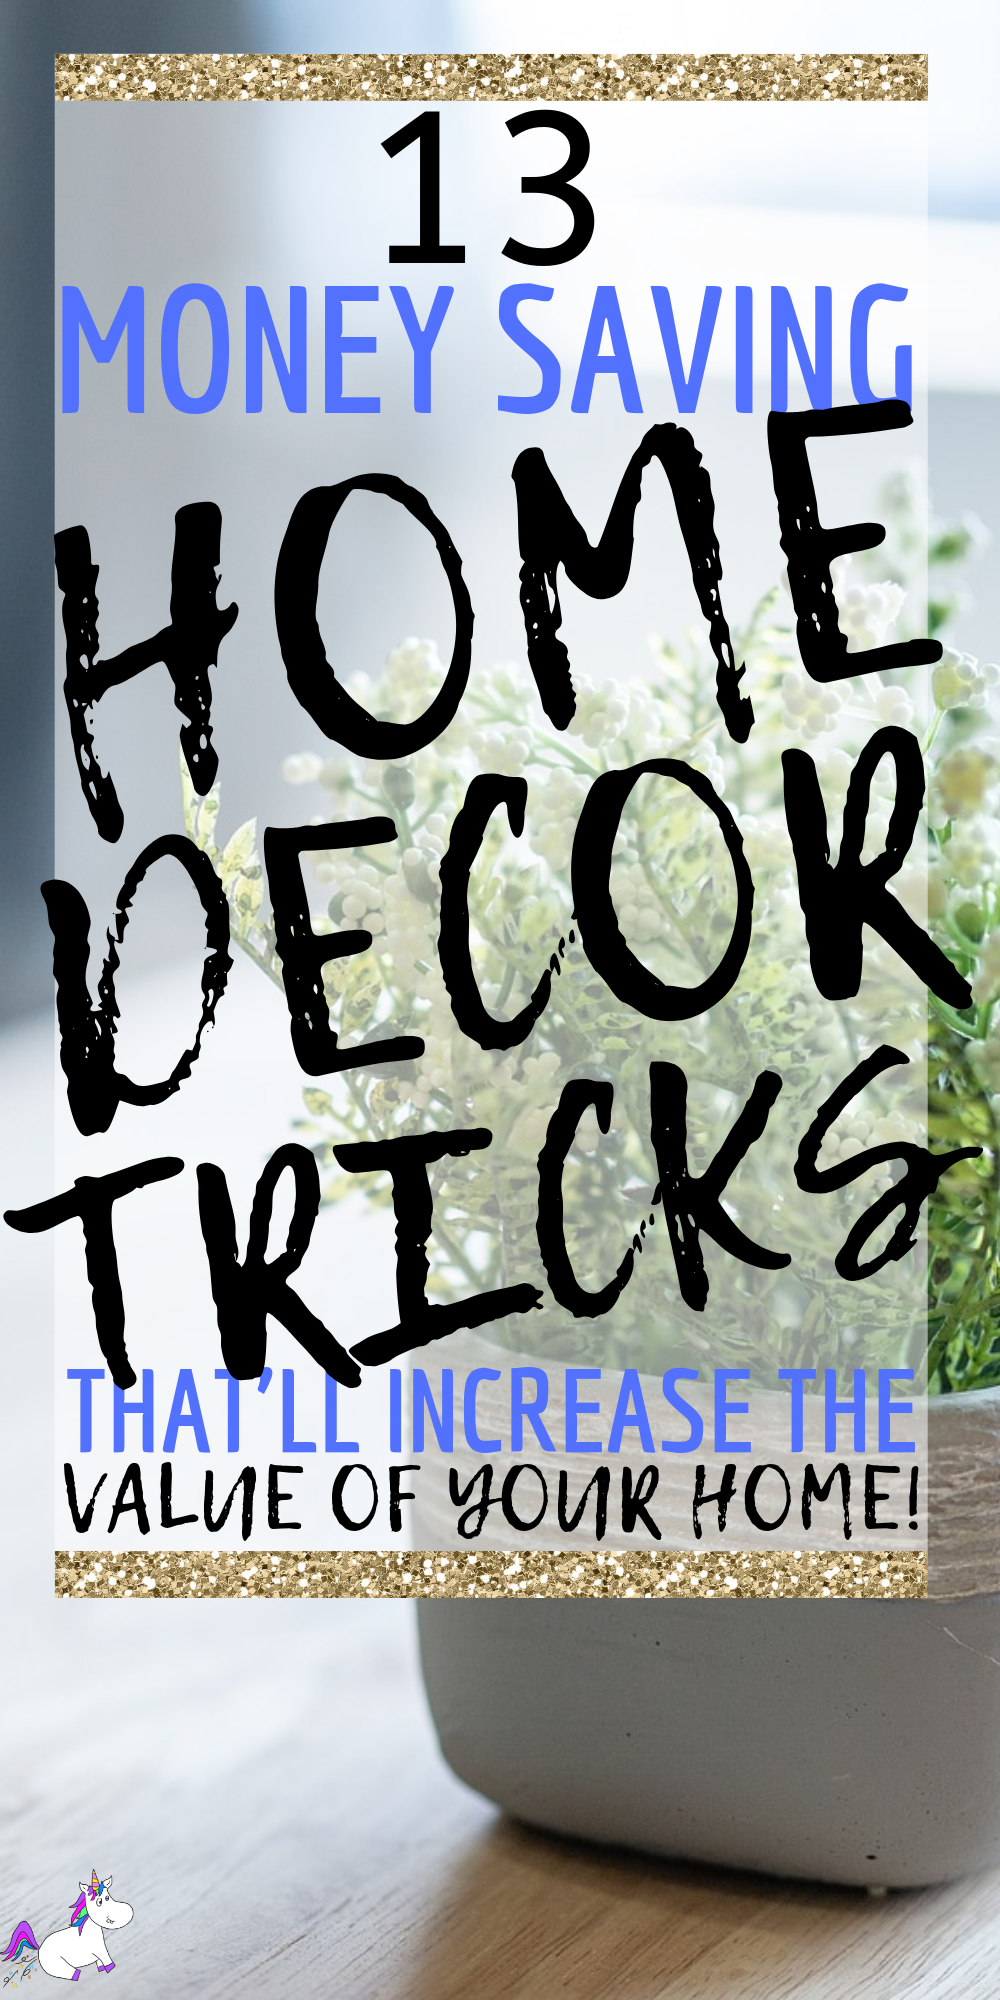 13 Money Saving Home Decor Tricks That Will Add Value To Your Home | Increase Home Value | DIY Home Decor | Home Decor On A Budget #increasehomevalue #homeimprovements #homedecoronabudget #homedecor #sellhouse